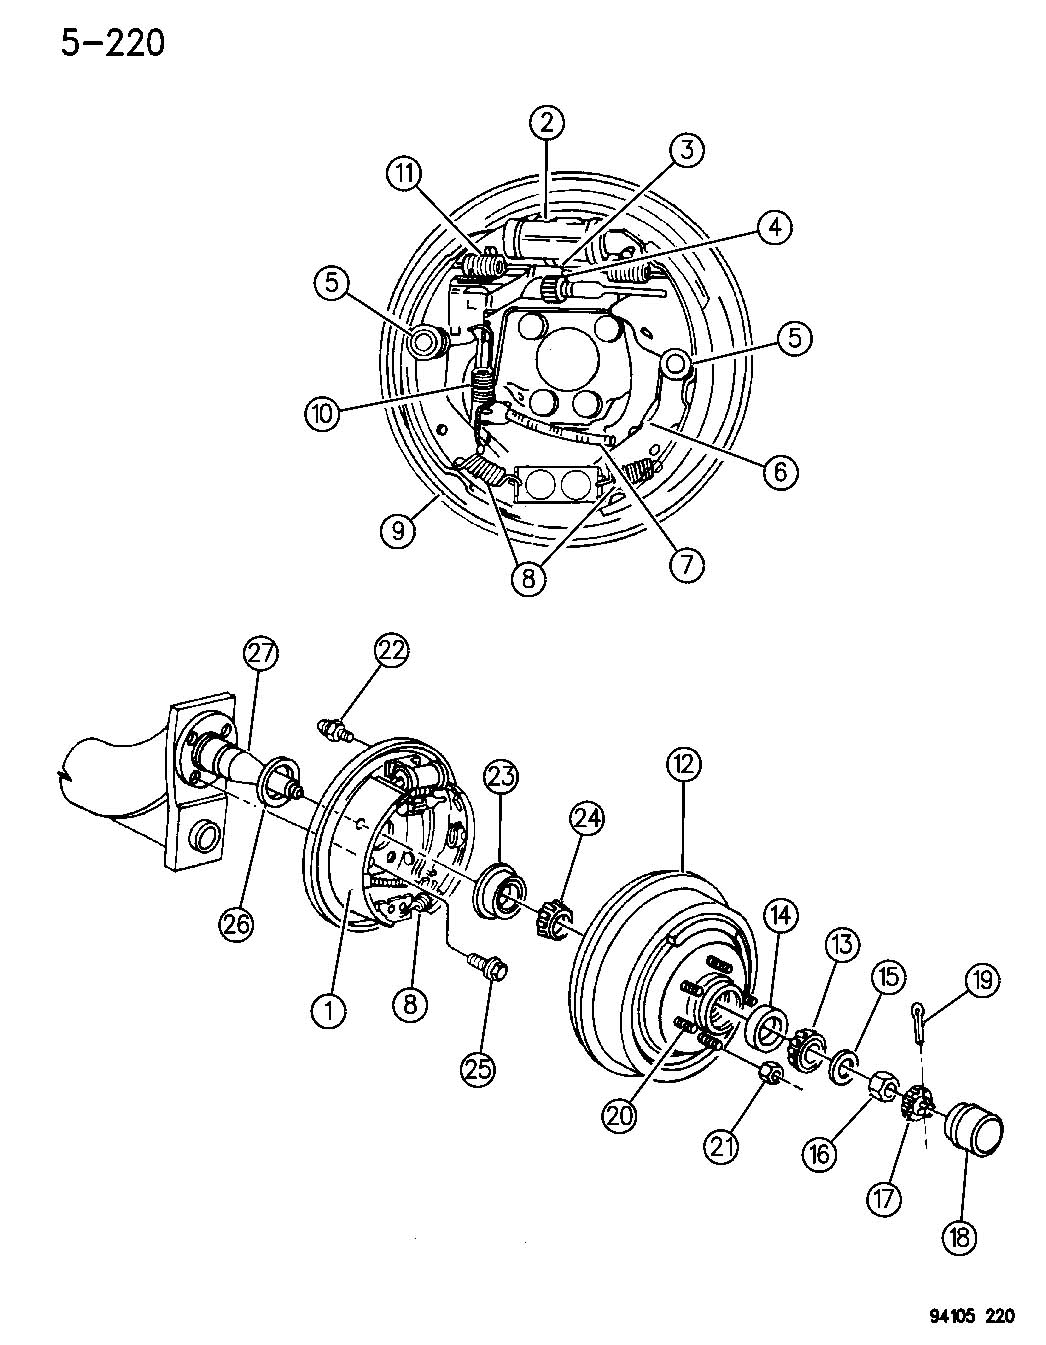 Discussion T18084 ds649080 likewise Cadillac Escalade 2004 Diagram additionally Rear Diff Axle Removal 1994 Plymouth Sundance together with Diesel Engine In Line Injection System further Pleasure4. on toyota v8 engines